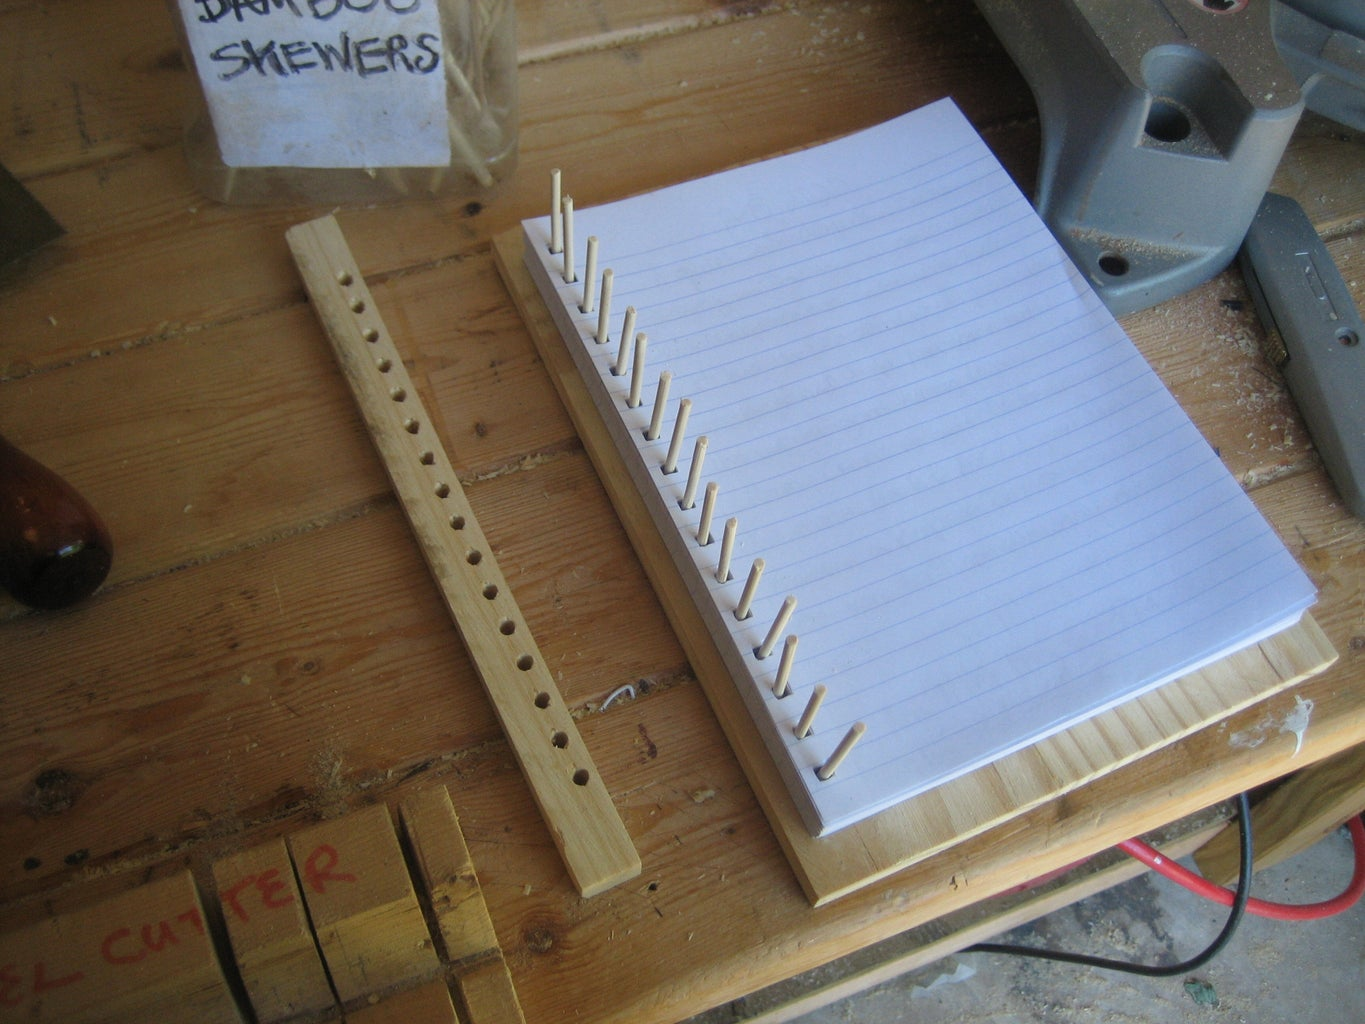 RECONSTRUCTING THE BOOK